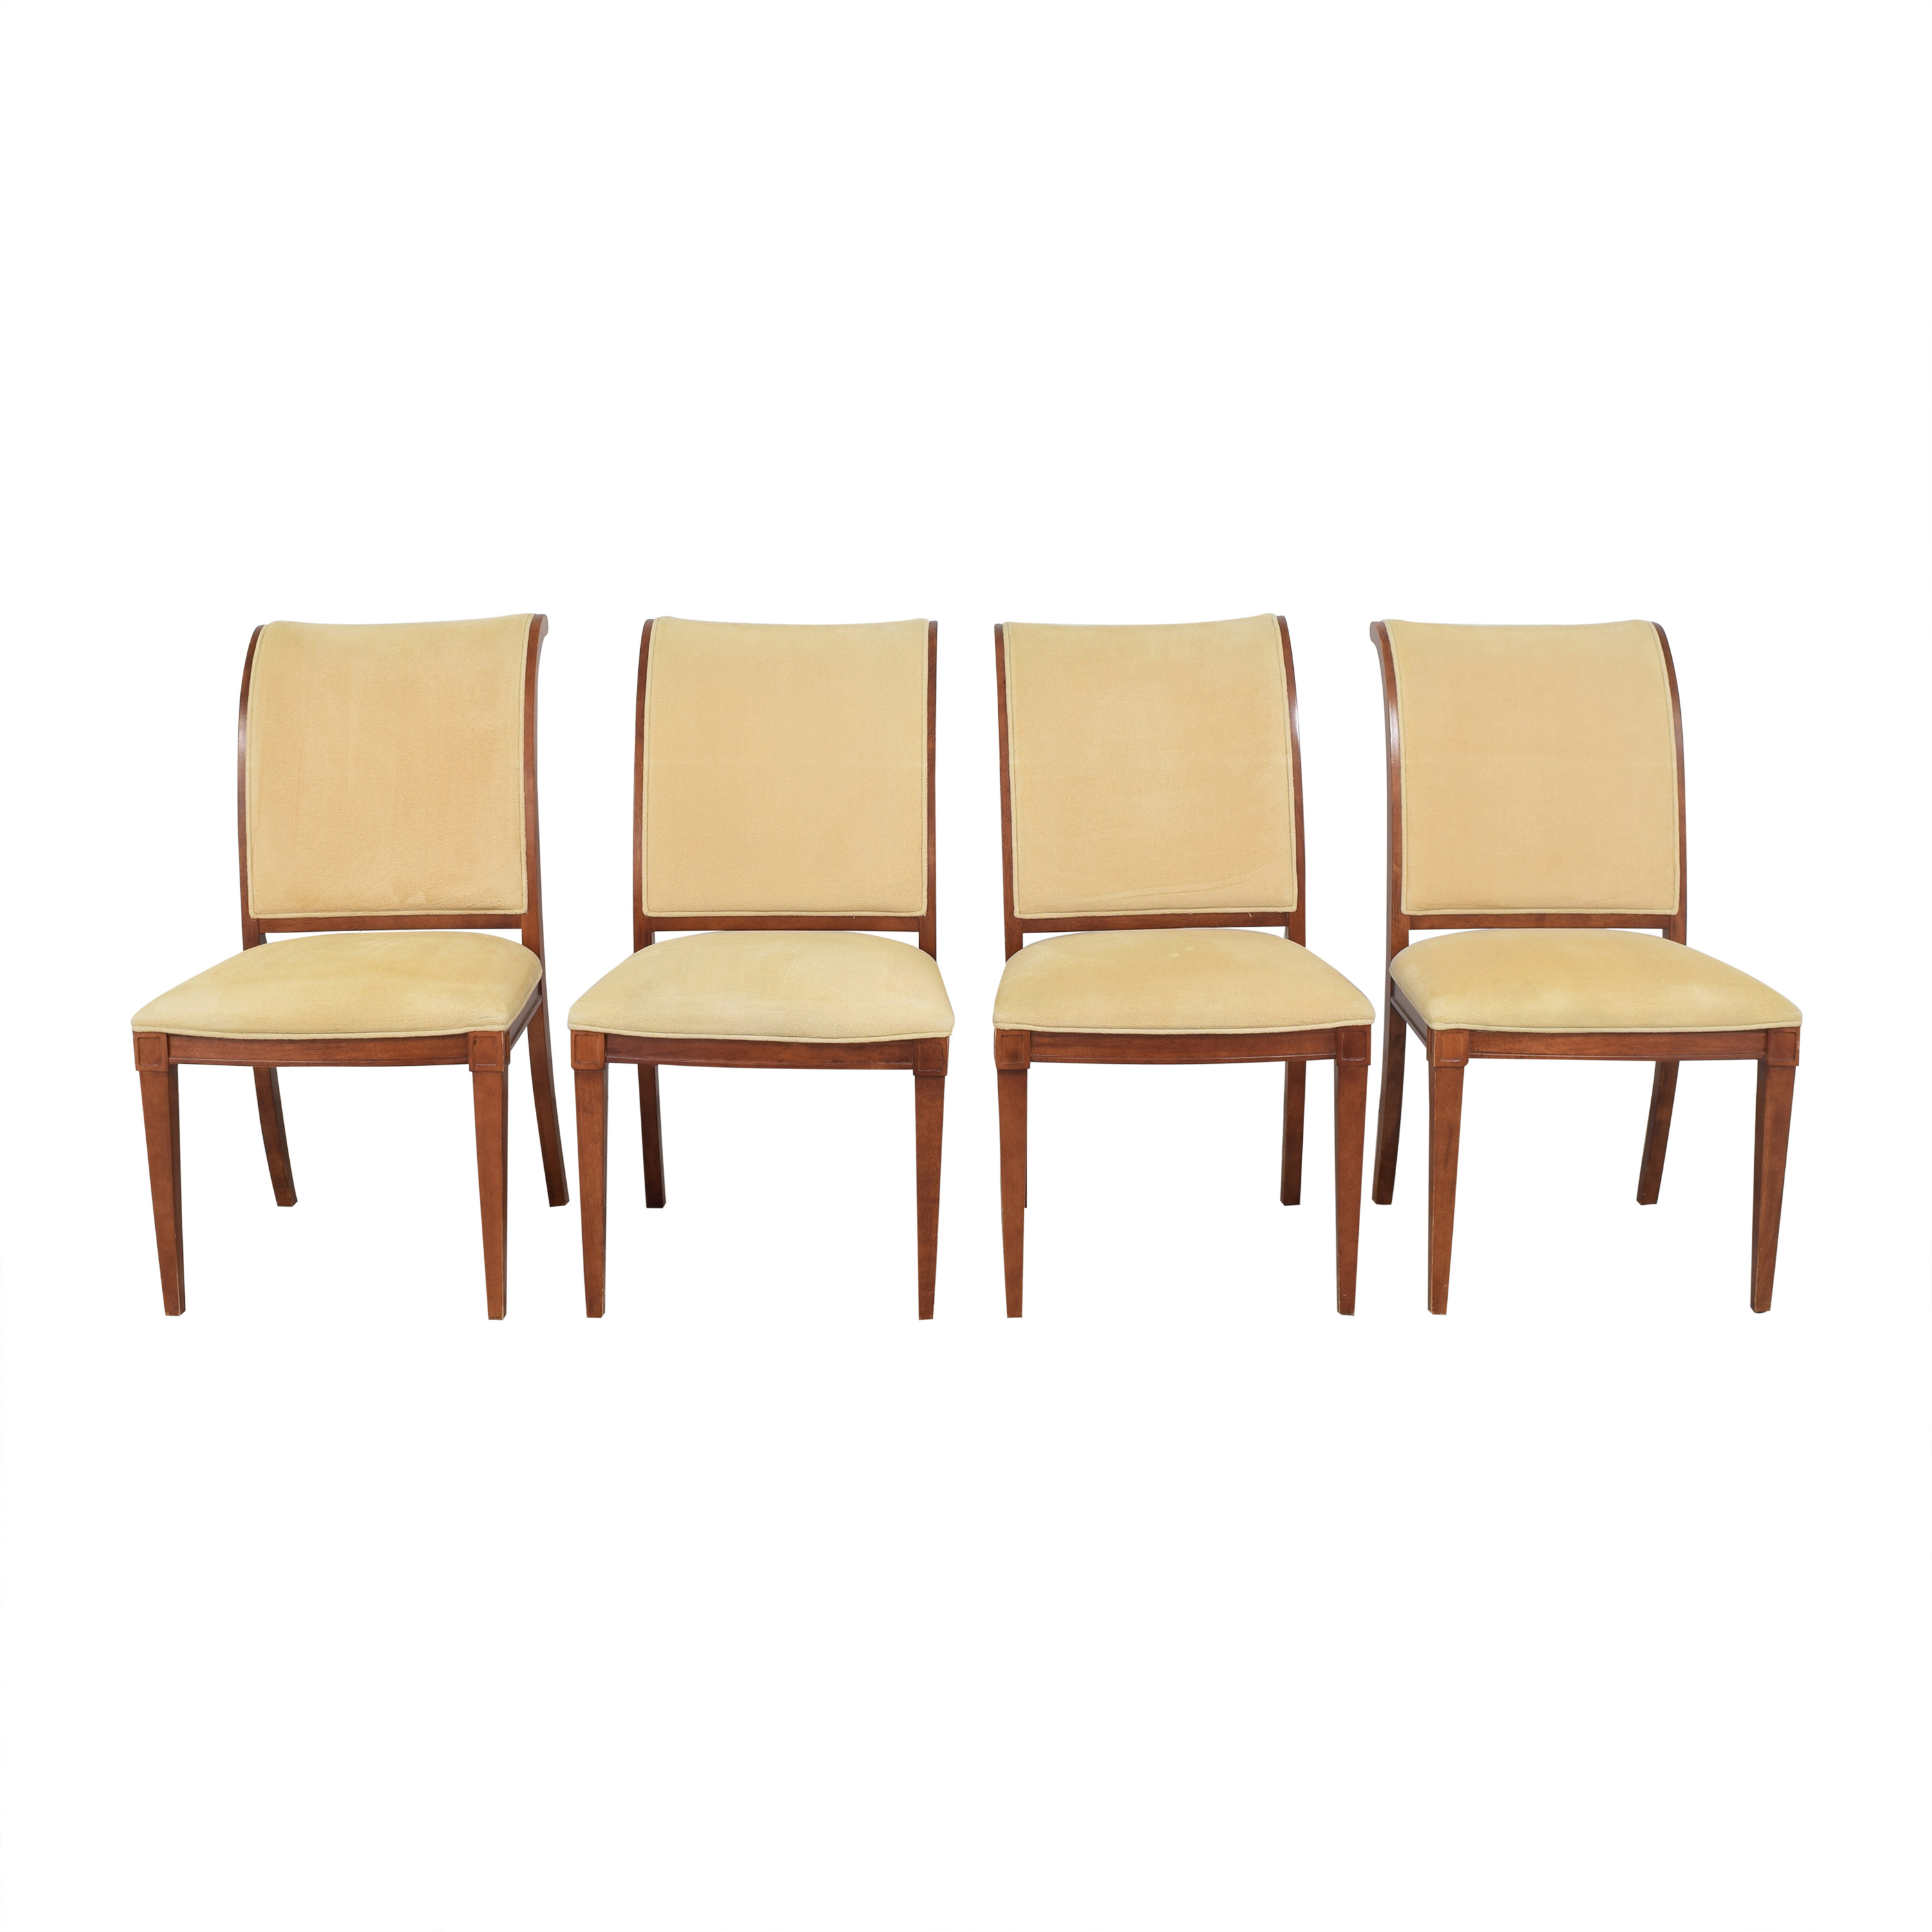 Bombay Company Bombay Company Scroll Back Dining Chairs Dining Chairs